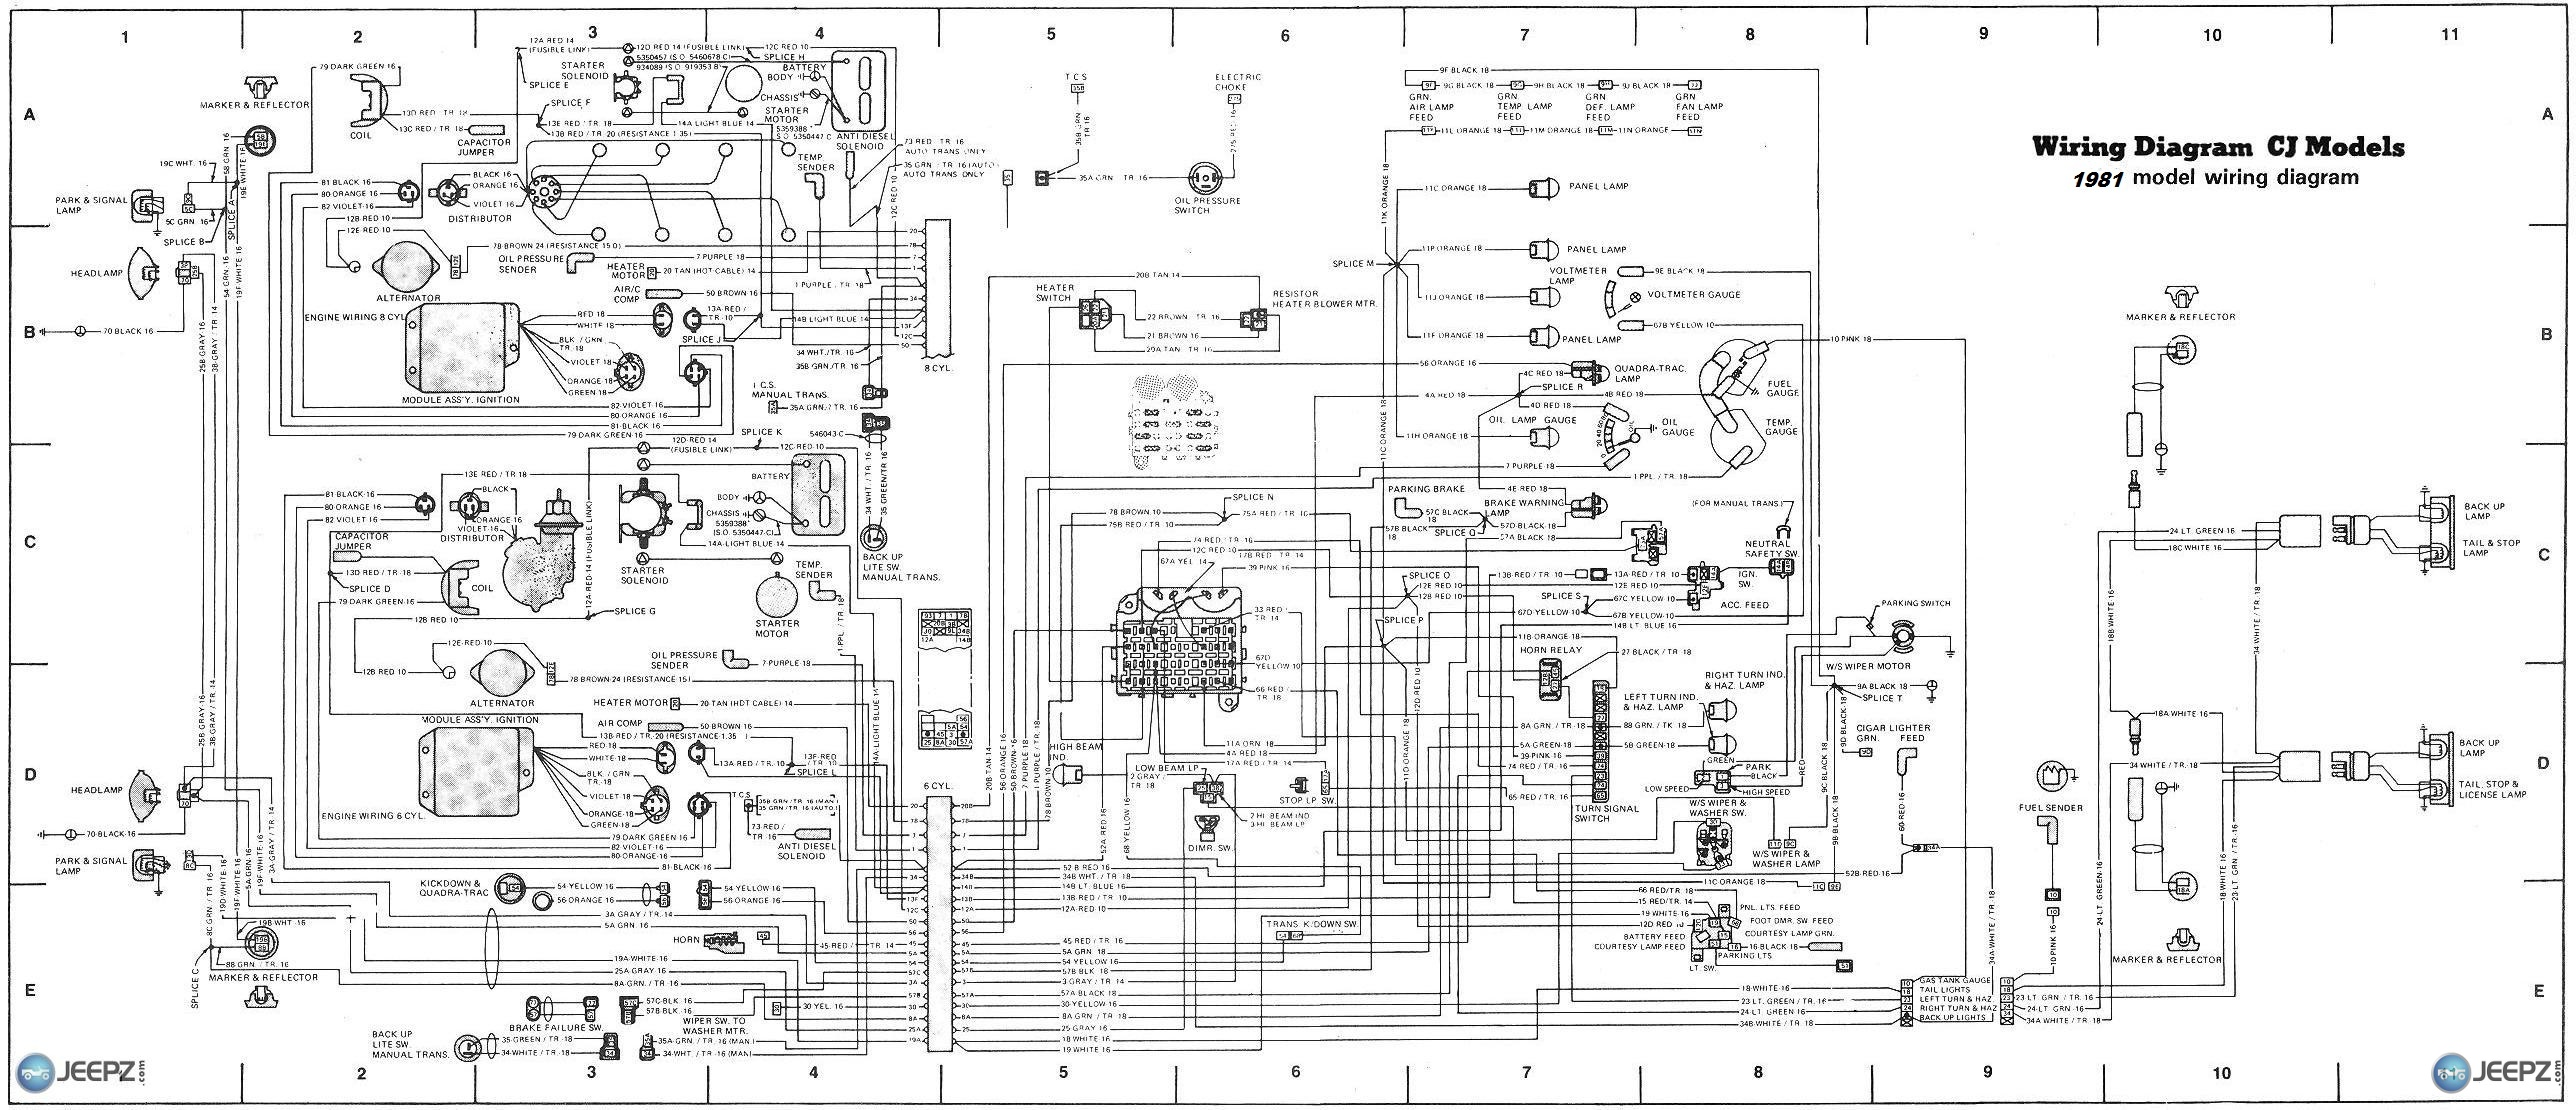 1982 Jeep Wiring Diagram 1985 jeep cj7 wiring diagram jeep cj7 tail light  wiring diagram - lack.freeappsforkids.co.ukWires